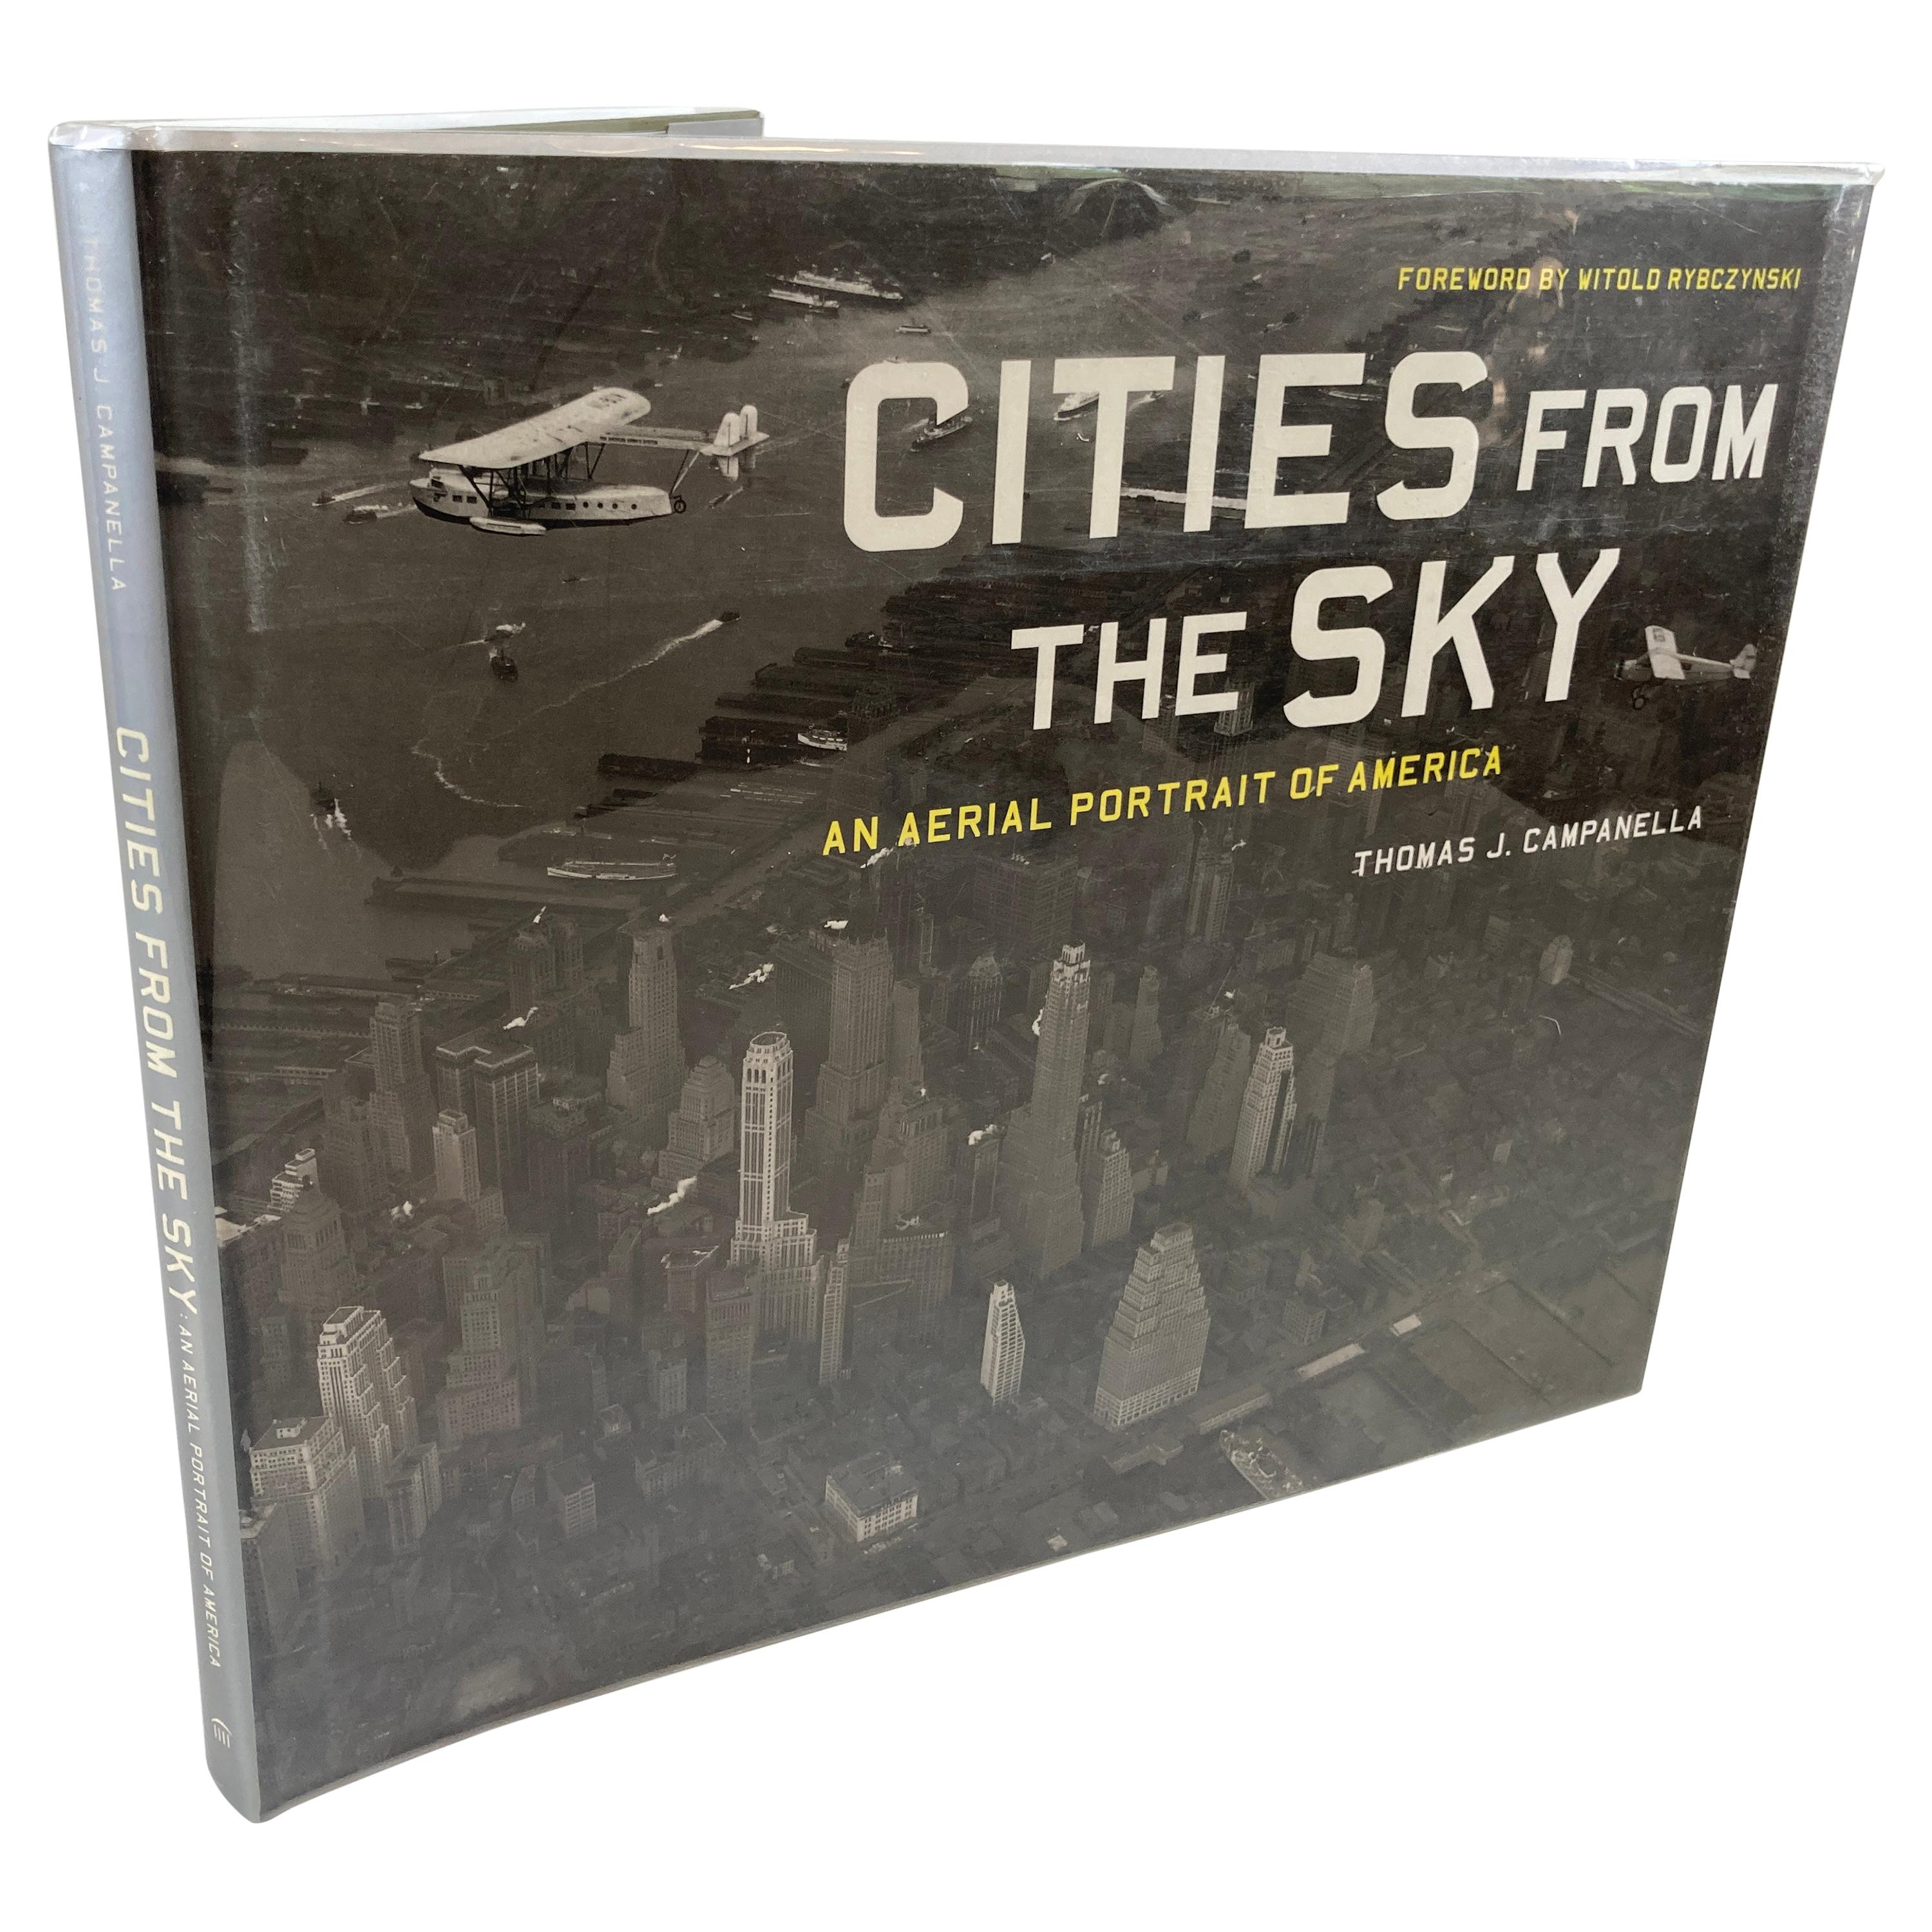 Cities from the Sky: An Aerial Portrait of America Hardcover Book